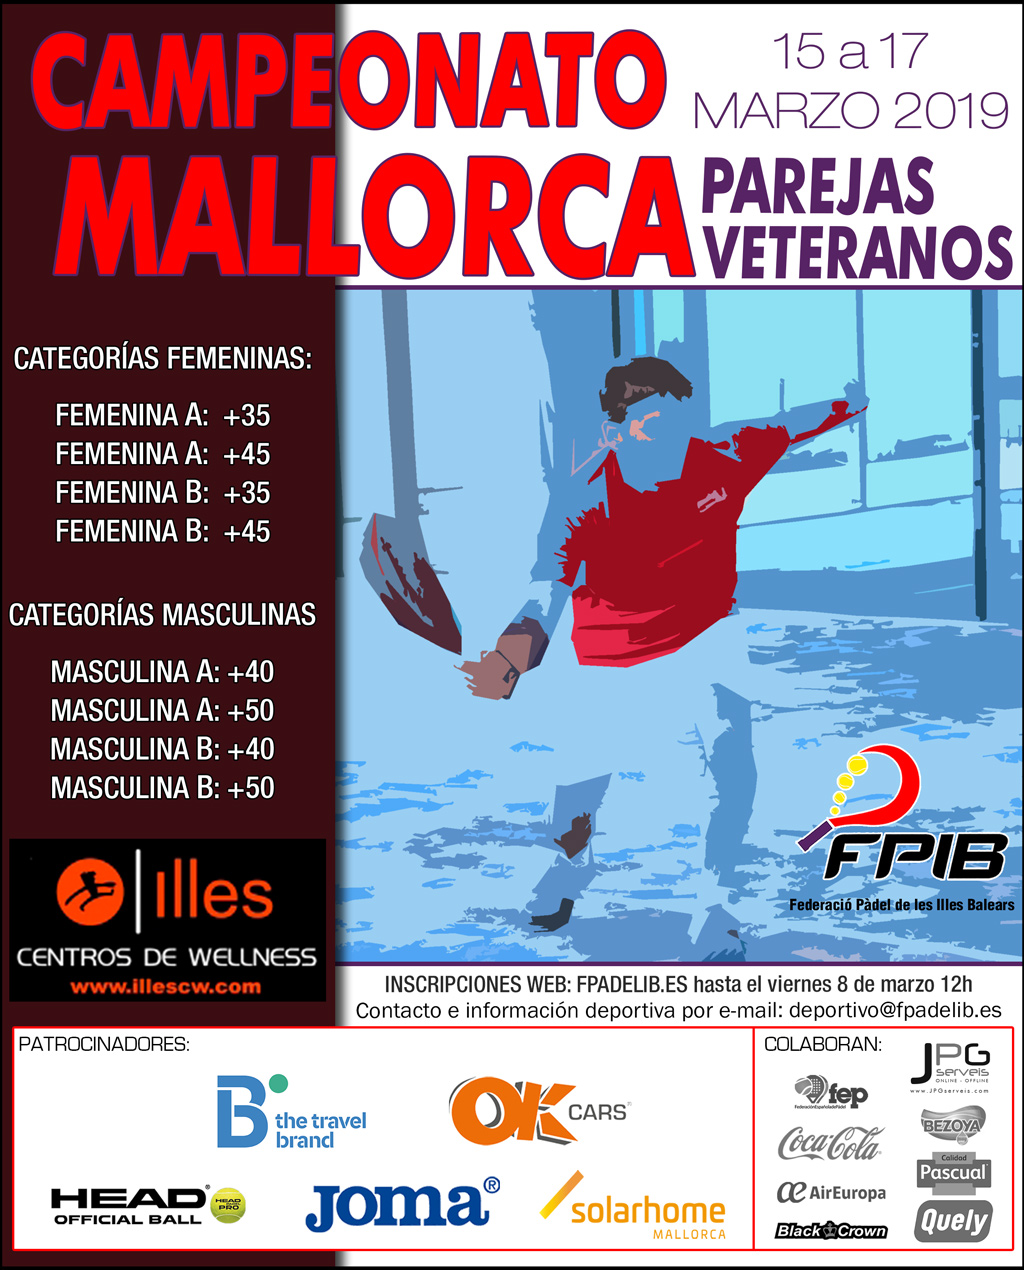 2019 Camp Mallorca parejas veteranos